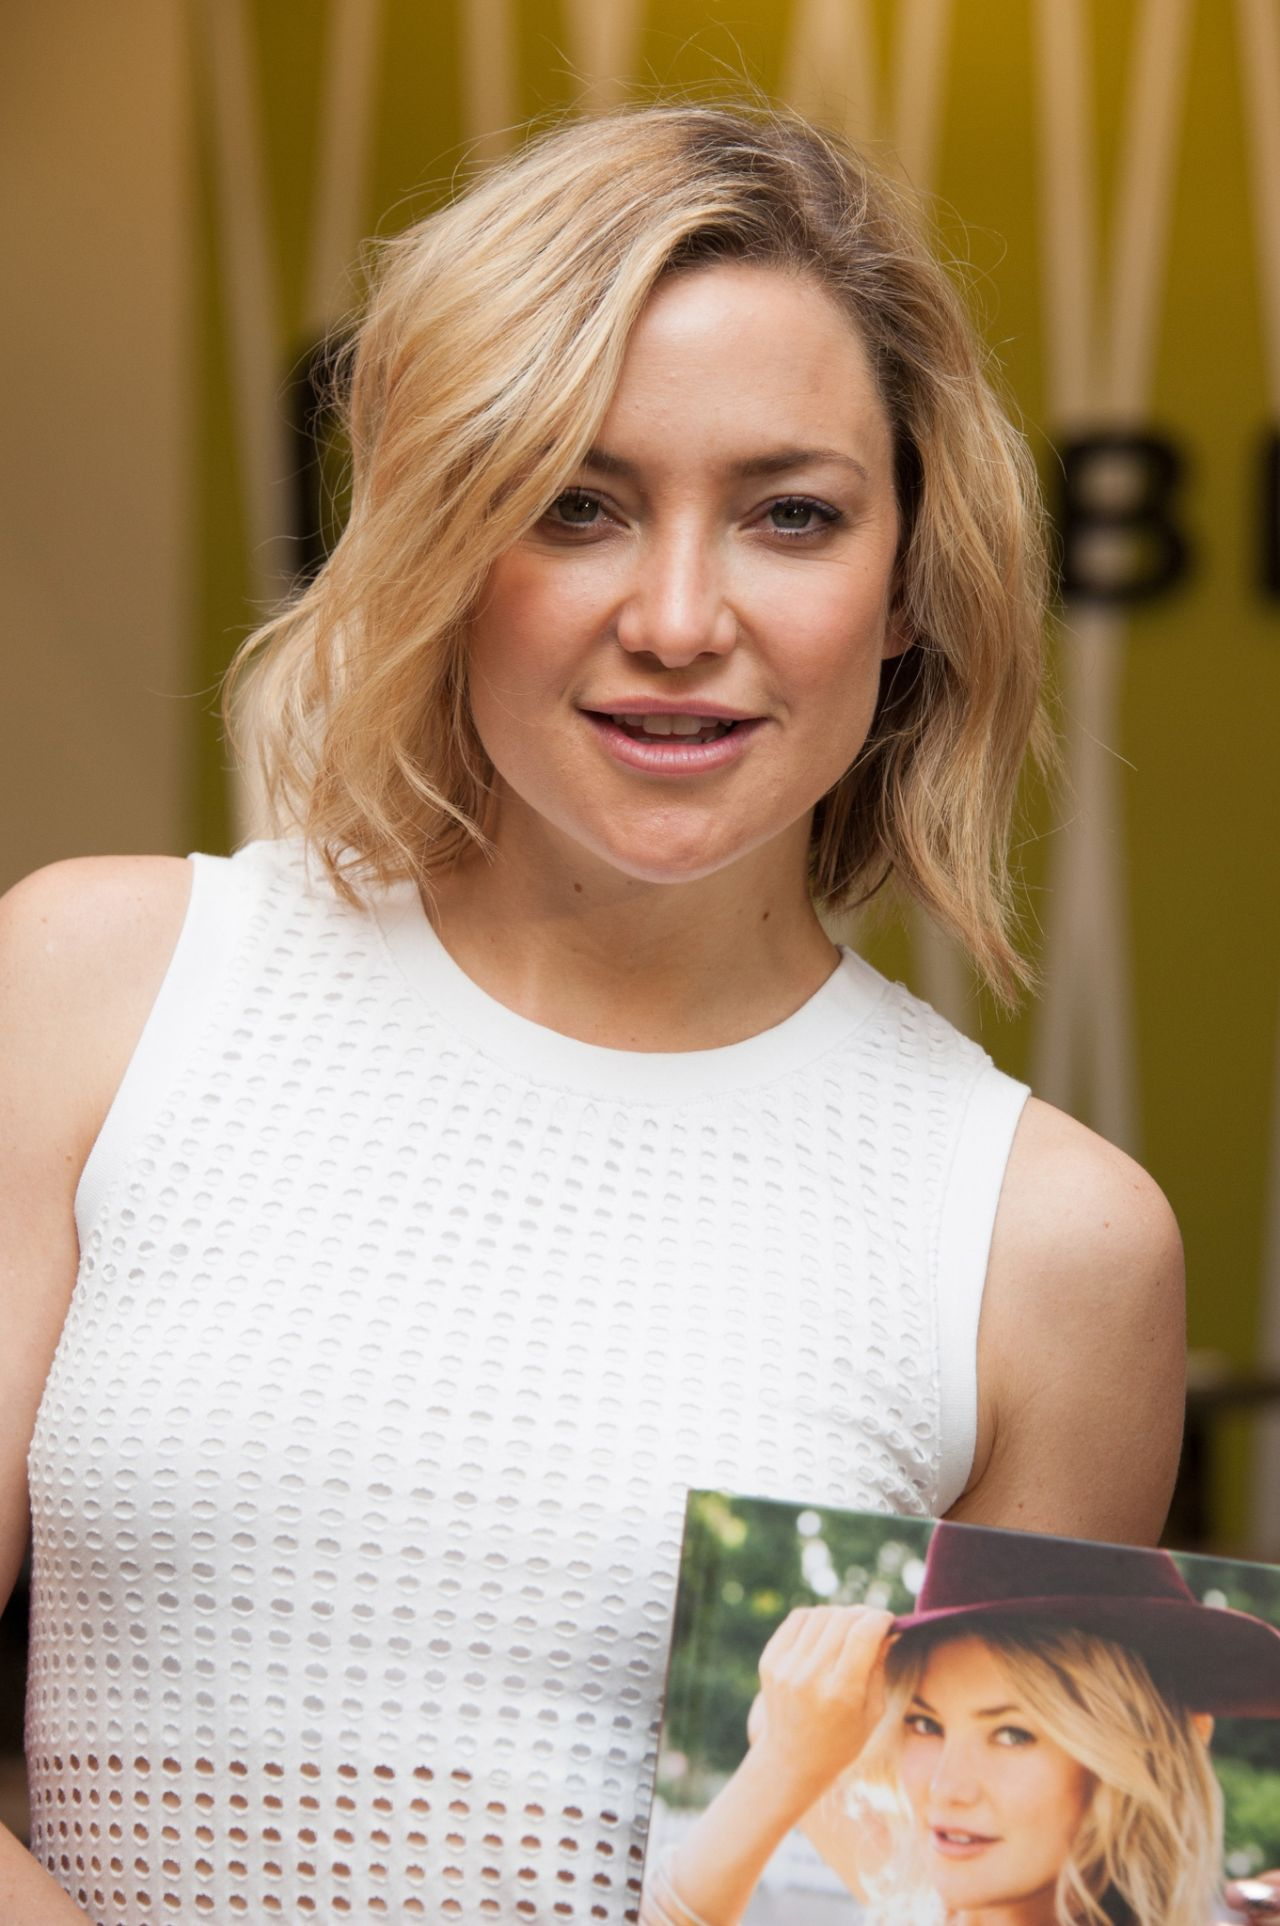 Kate Hudson Shares Lifestyle, Fitness Tips in 'Pretty ... |Pretty Happy Book